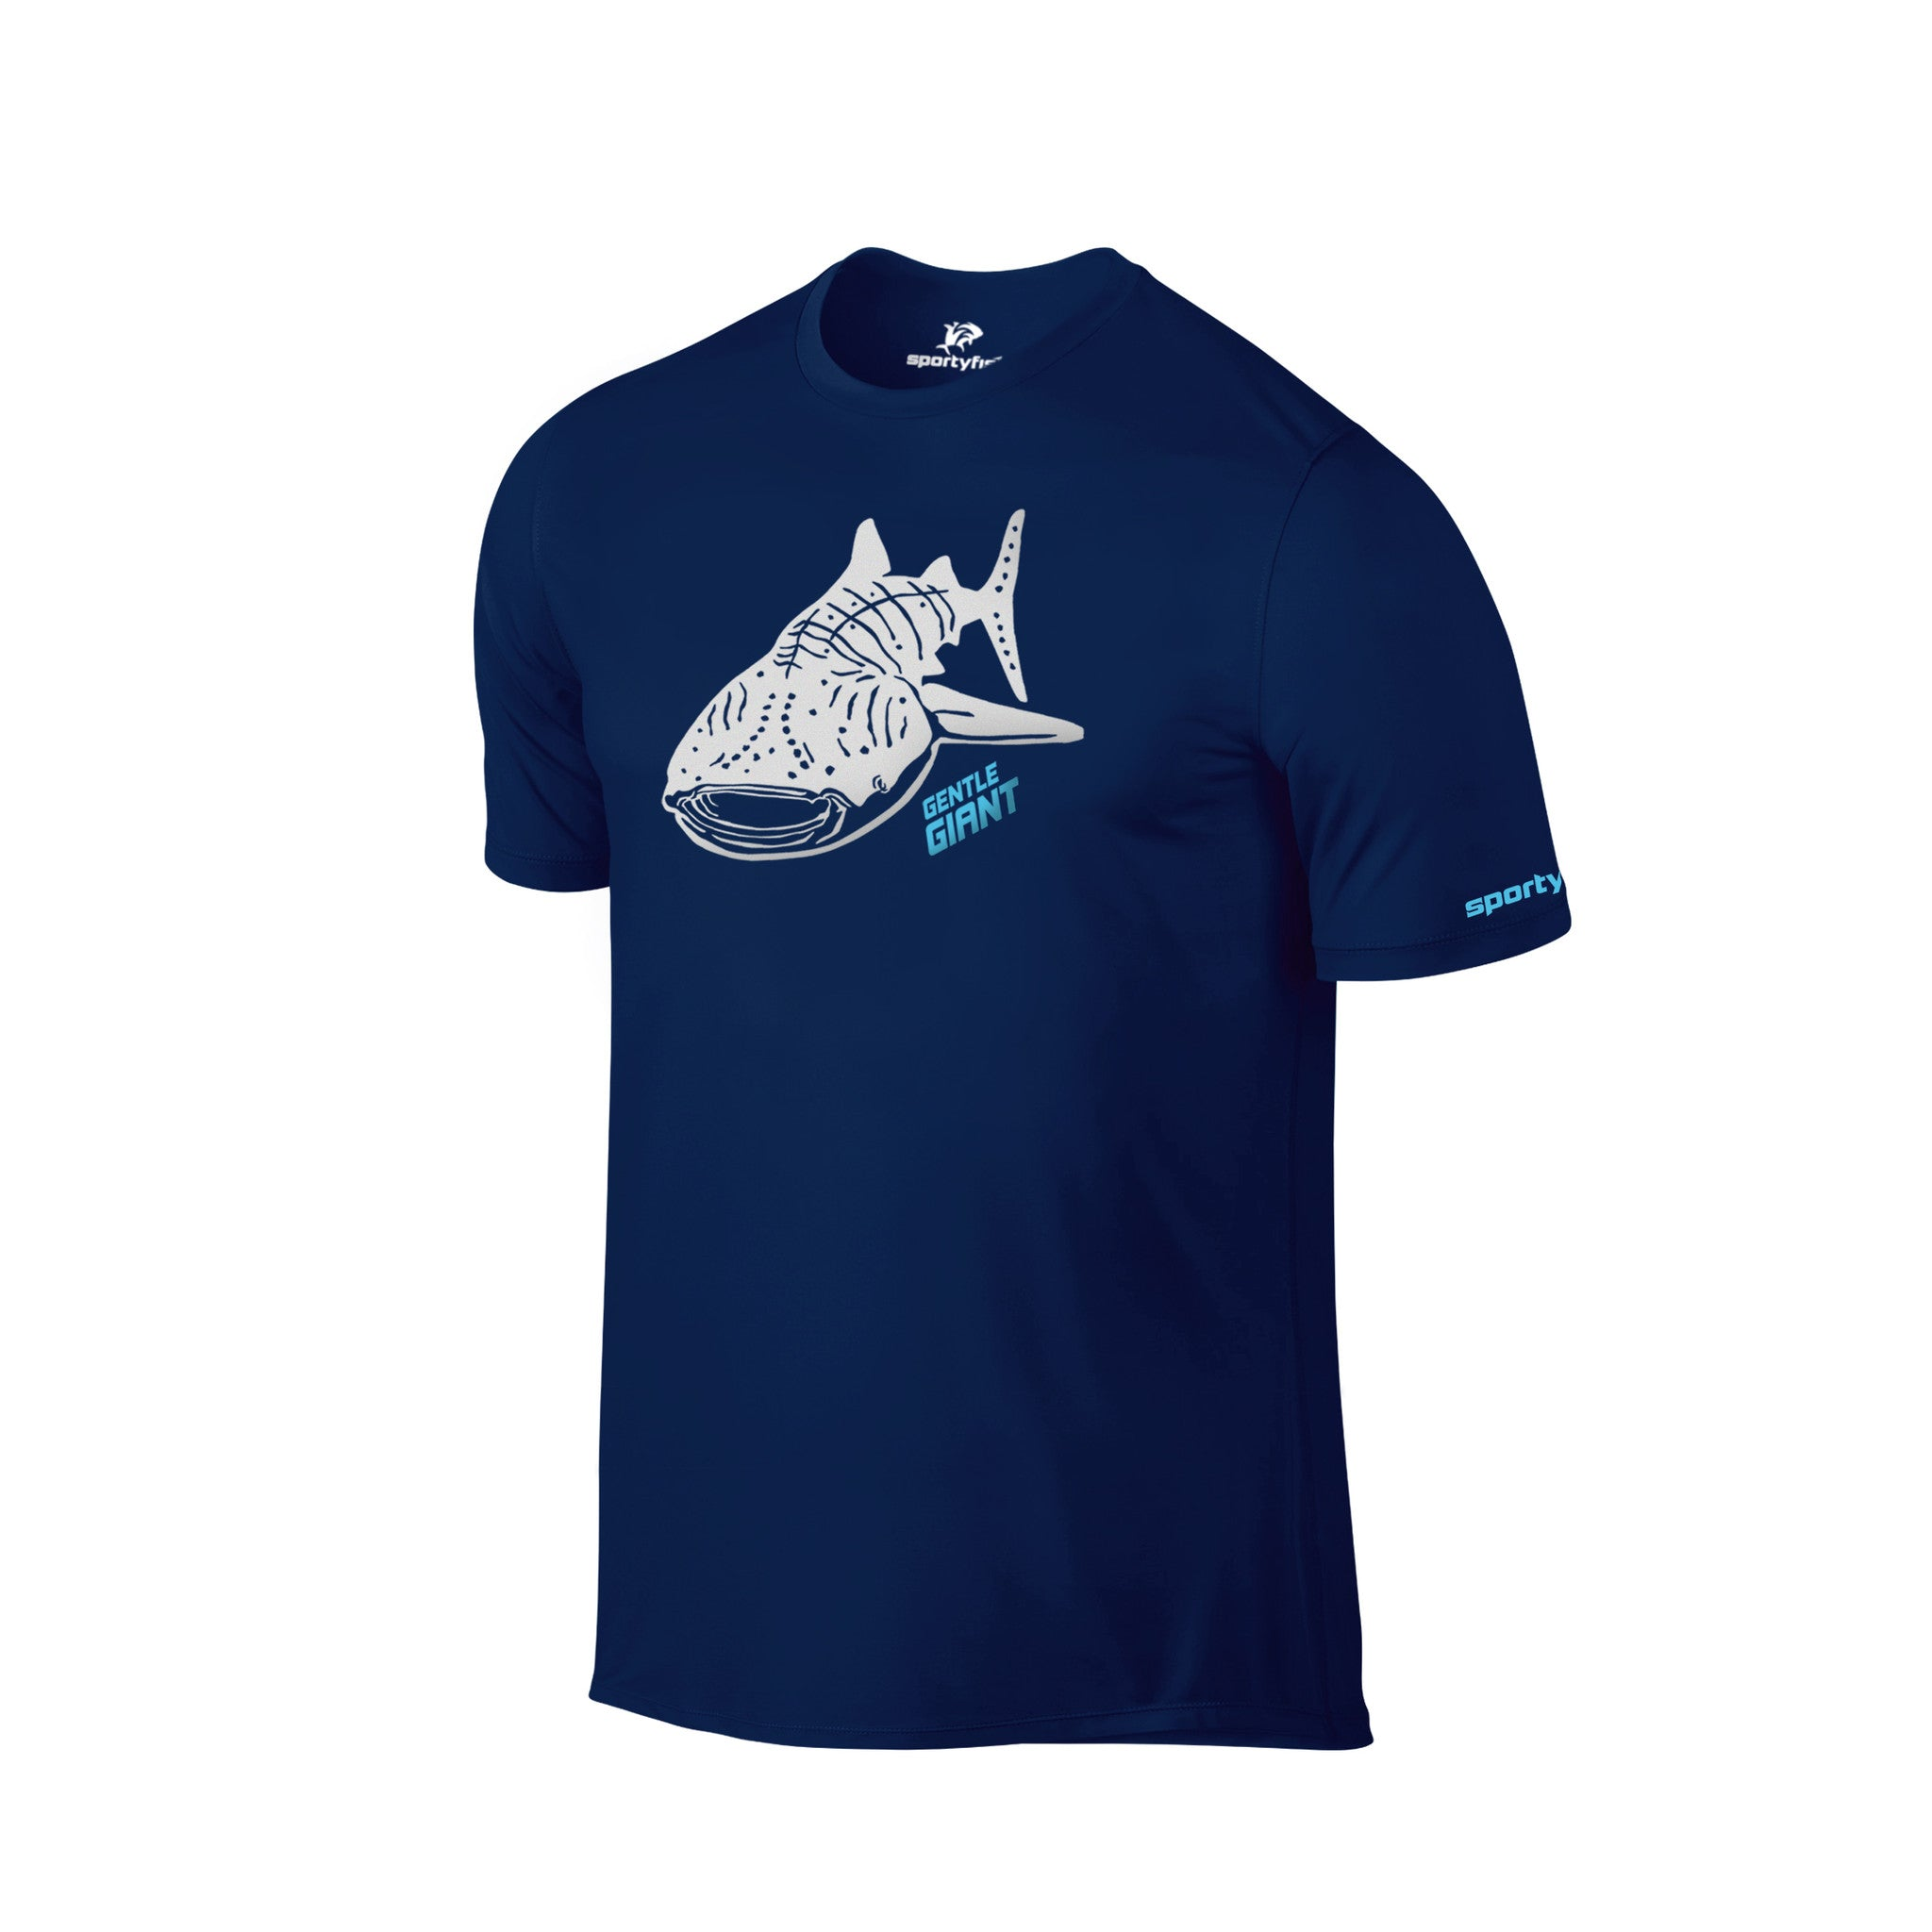 SportyFish Shark Crusader Series Navy Blue T-shirt(front view): Whale Shark